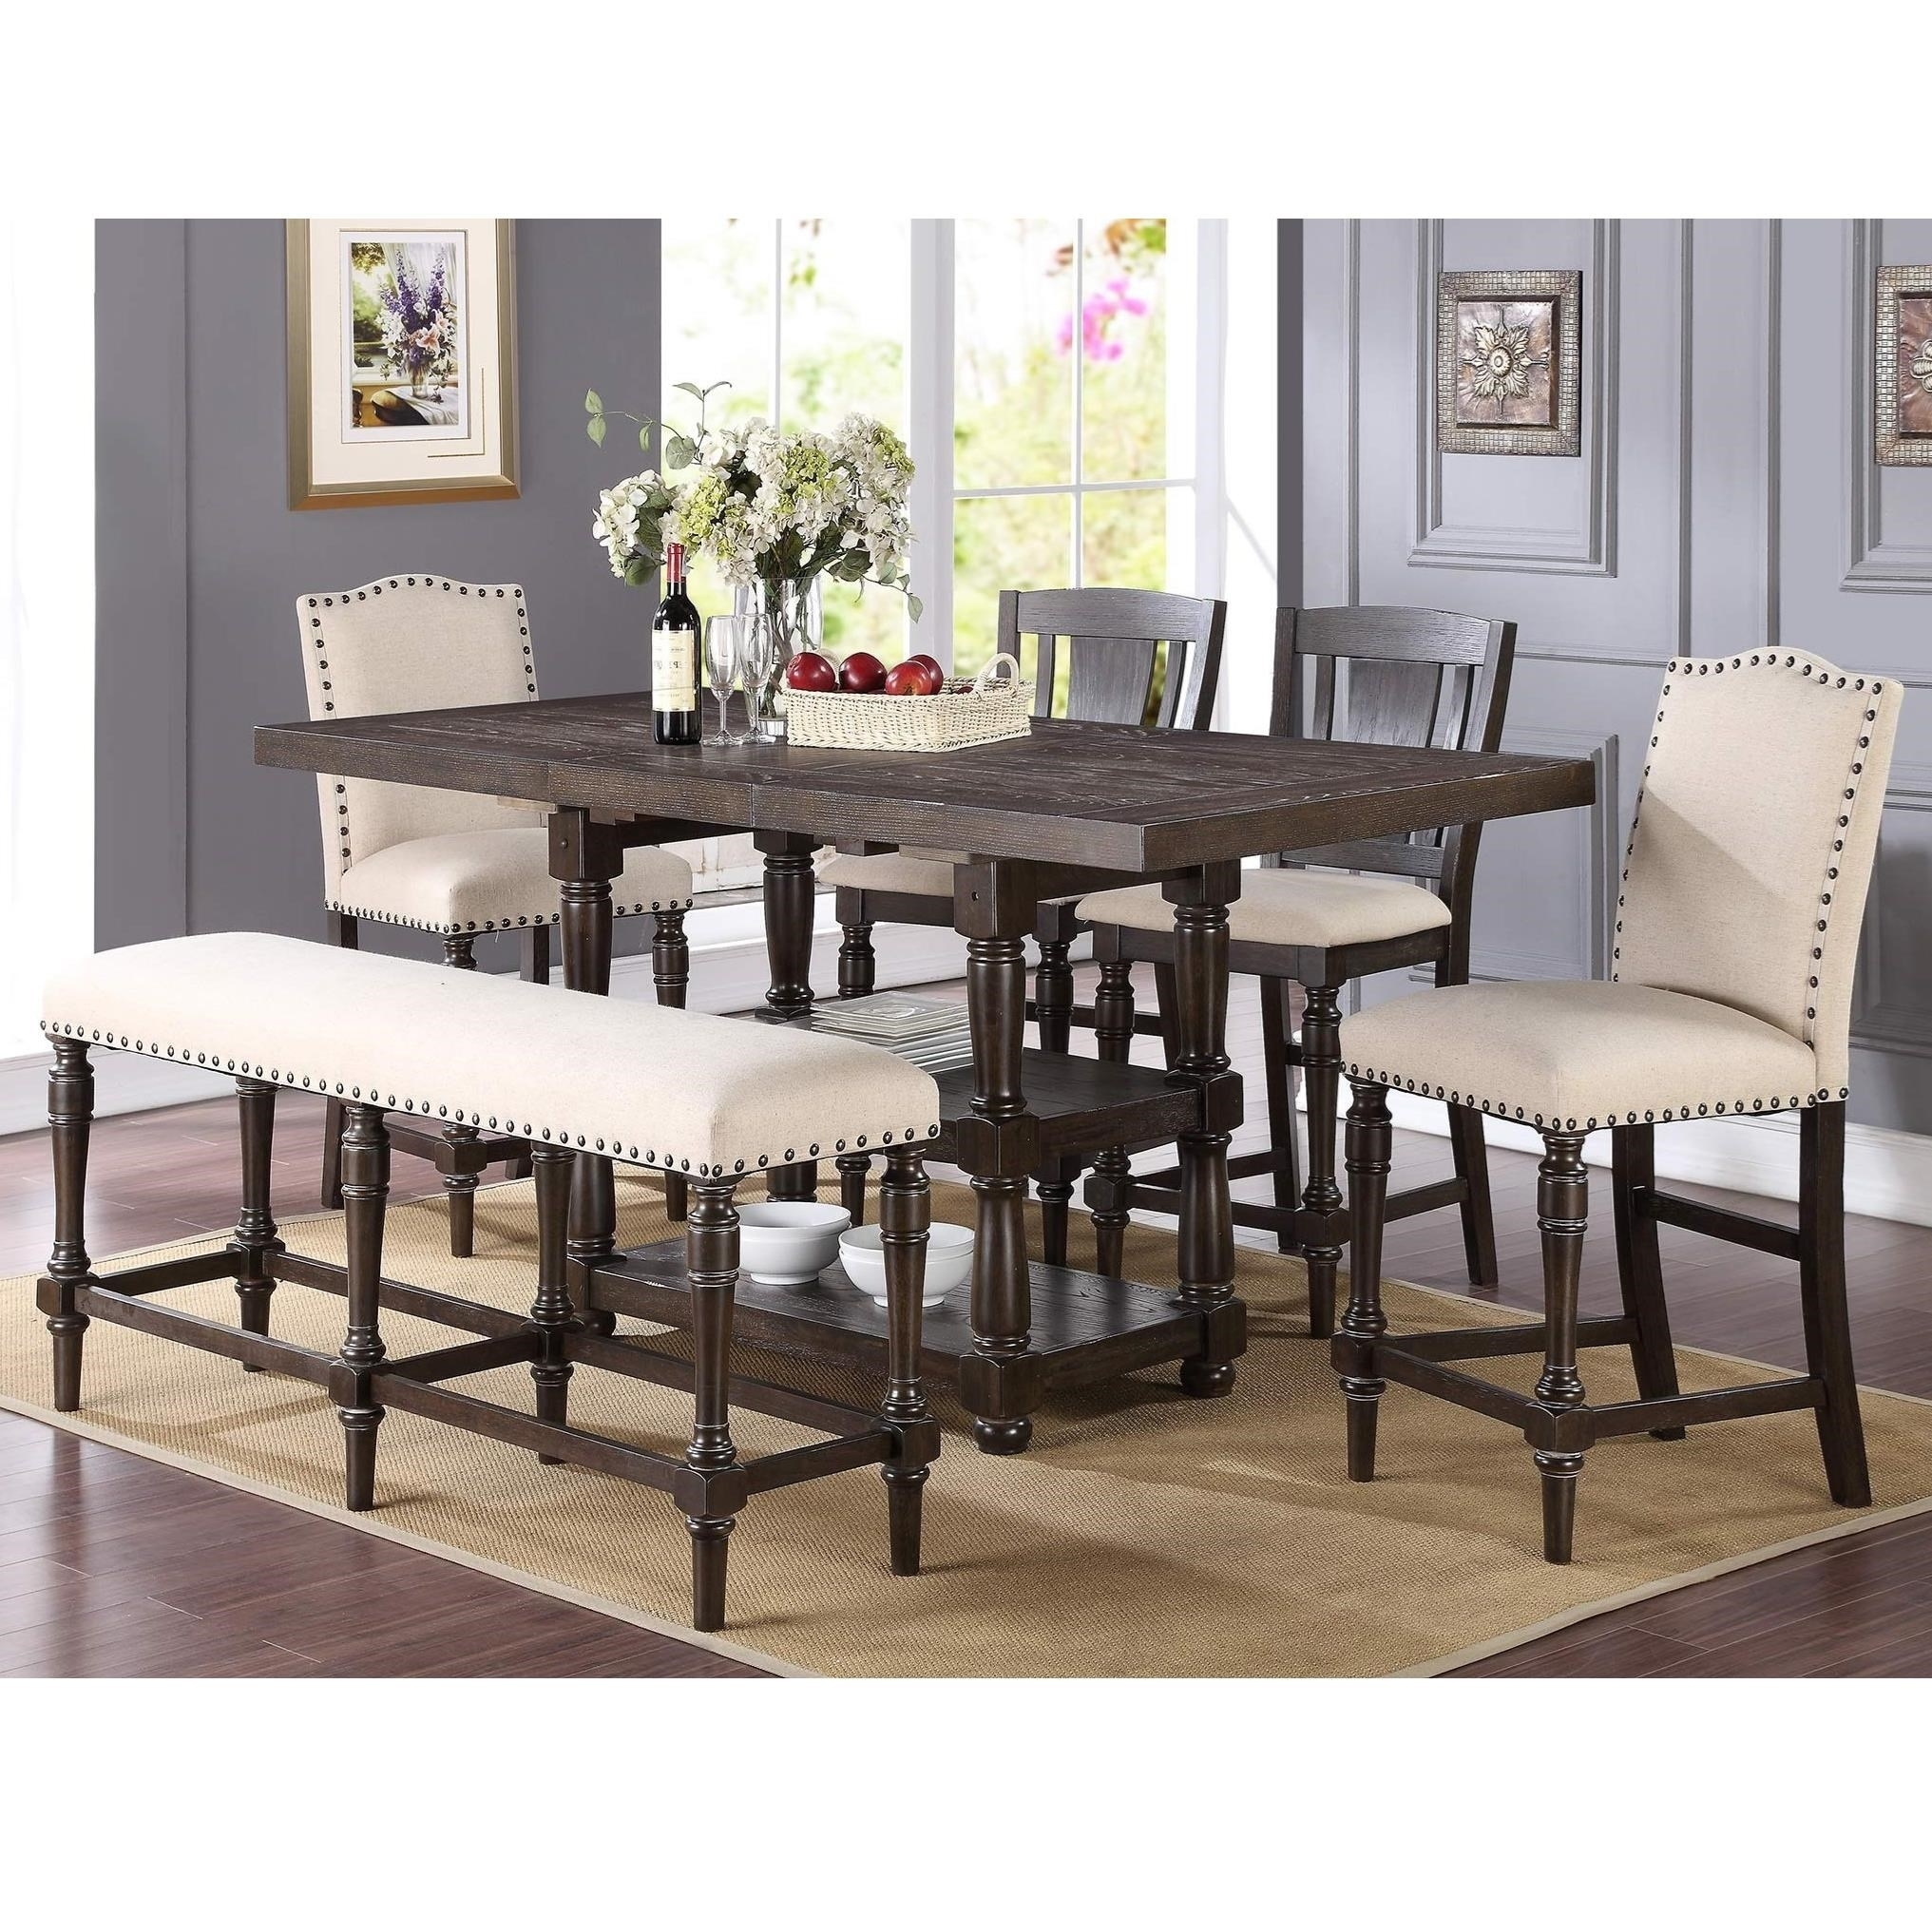 Table And Chair Sets | Milwaukee, West Allis, Oak Creek, Delafield Regarding Latest Jefferson Extension Round Dining Tables (Photo 12 of 20)